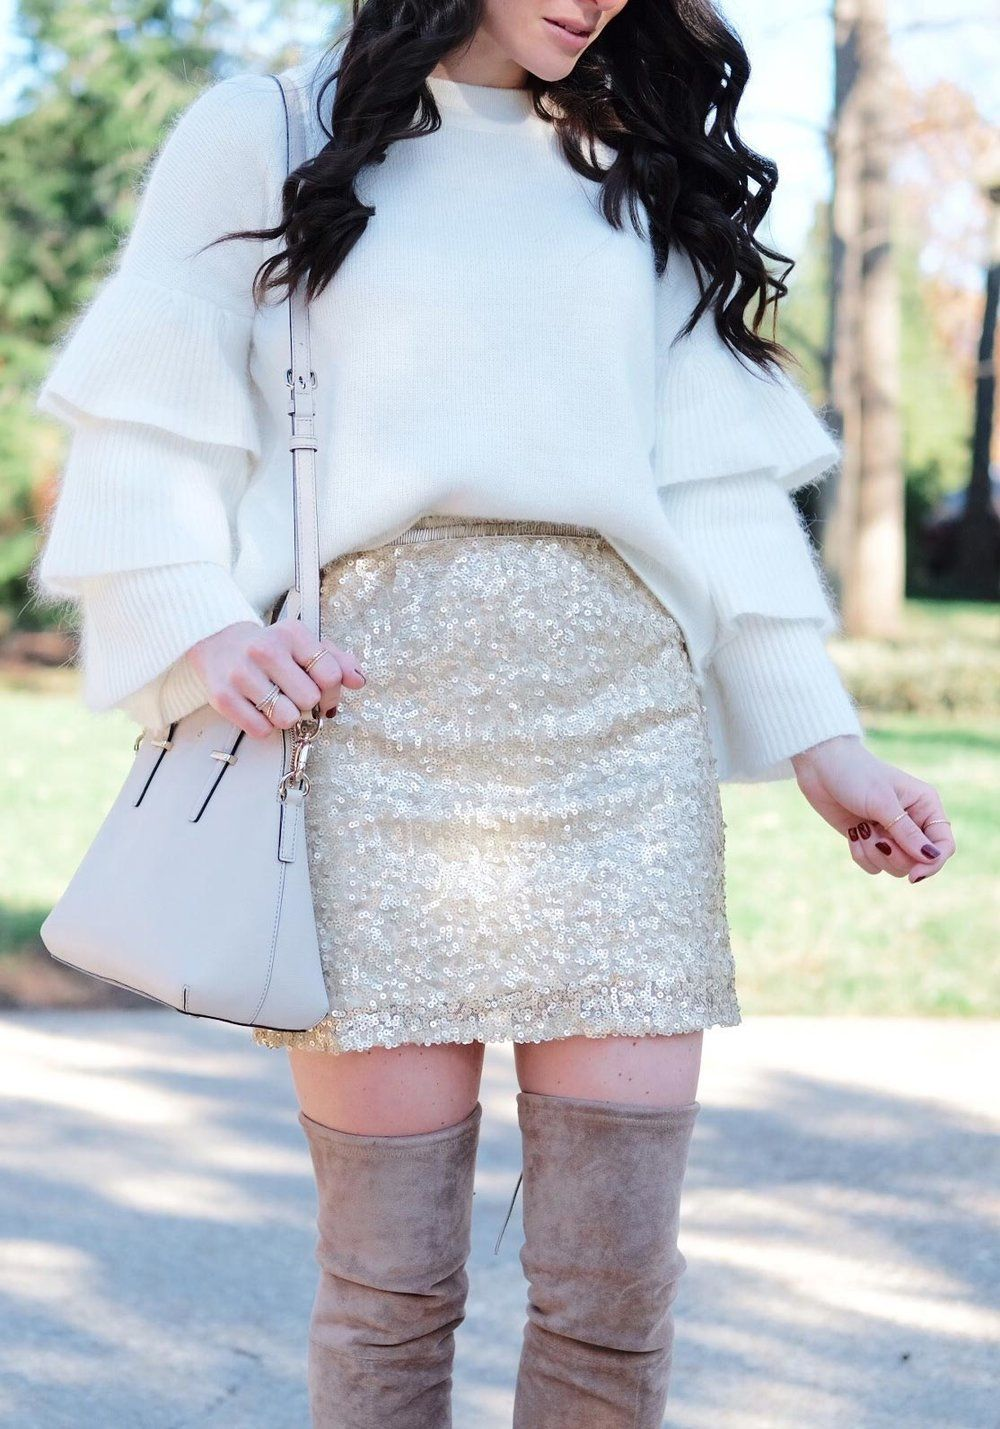 NEW YEAR'S EVE OUTFITS WITH OVERNIGHT SHIPPING UNDER 25